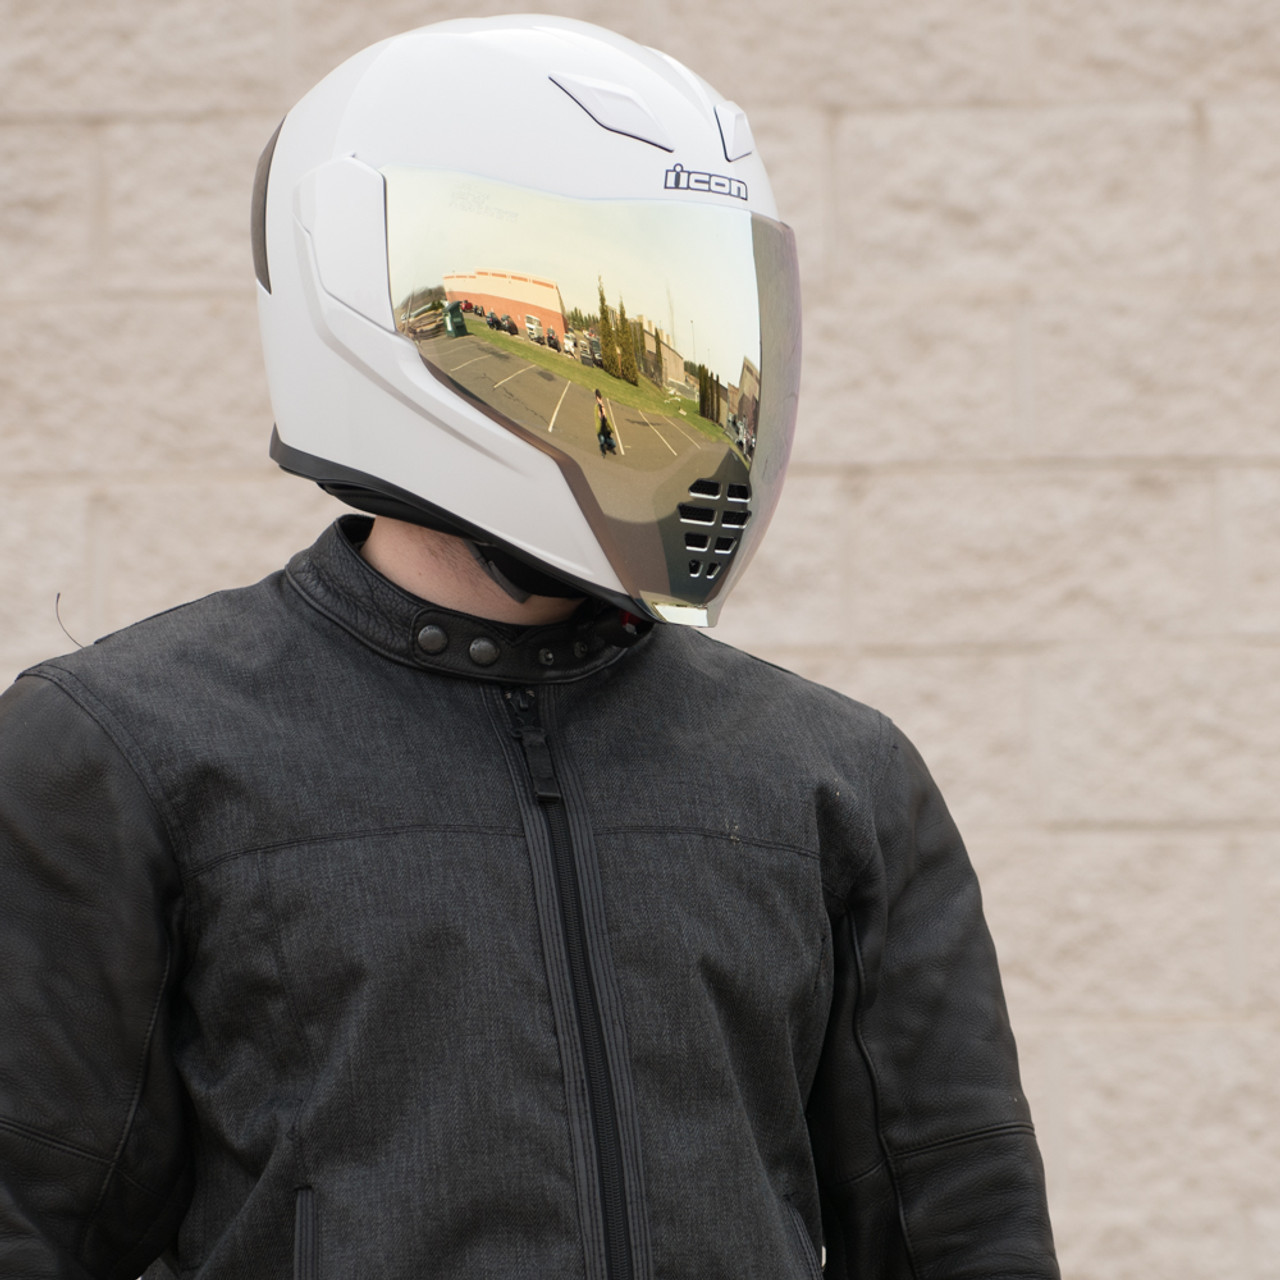 Best Motorcycle Armor >> Icon Airflite RST Gold Motorcycle Face Shield - 0130-0781 - Get Lowered Cycles